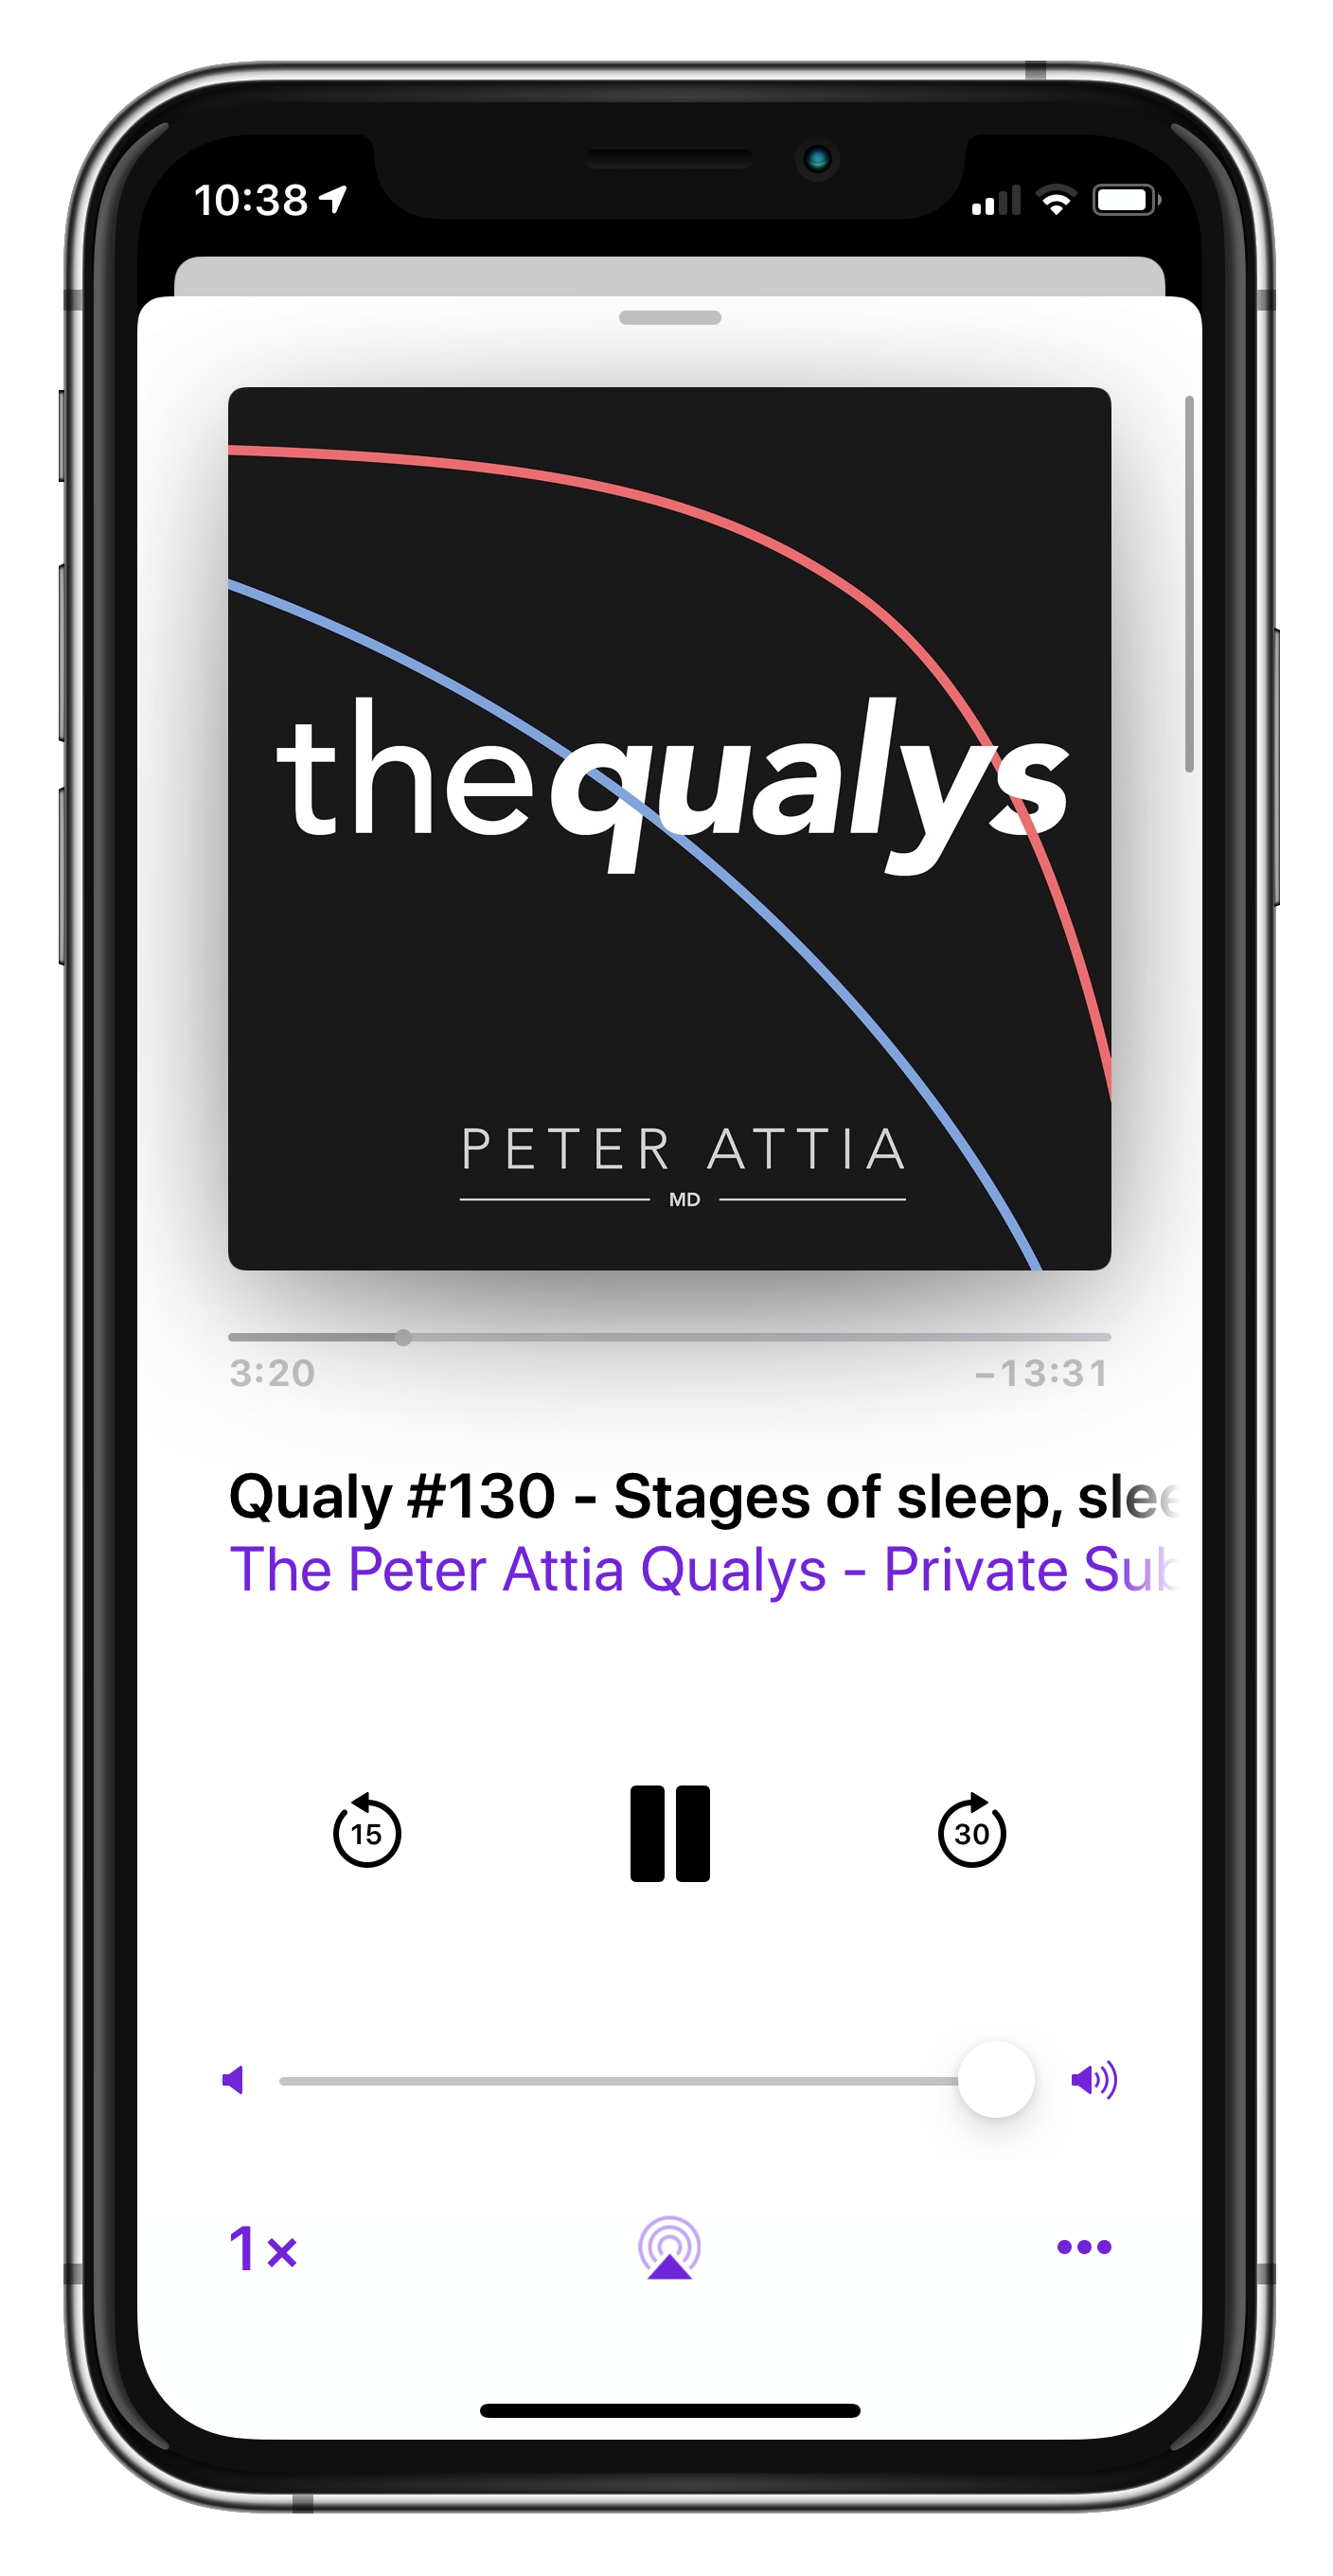 Mobile Phone playing Peter Attia podcast